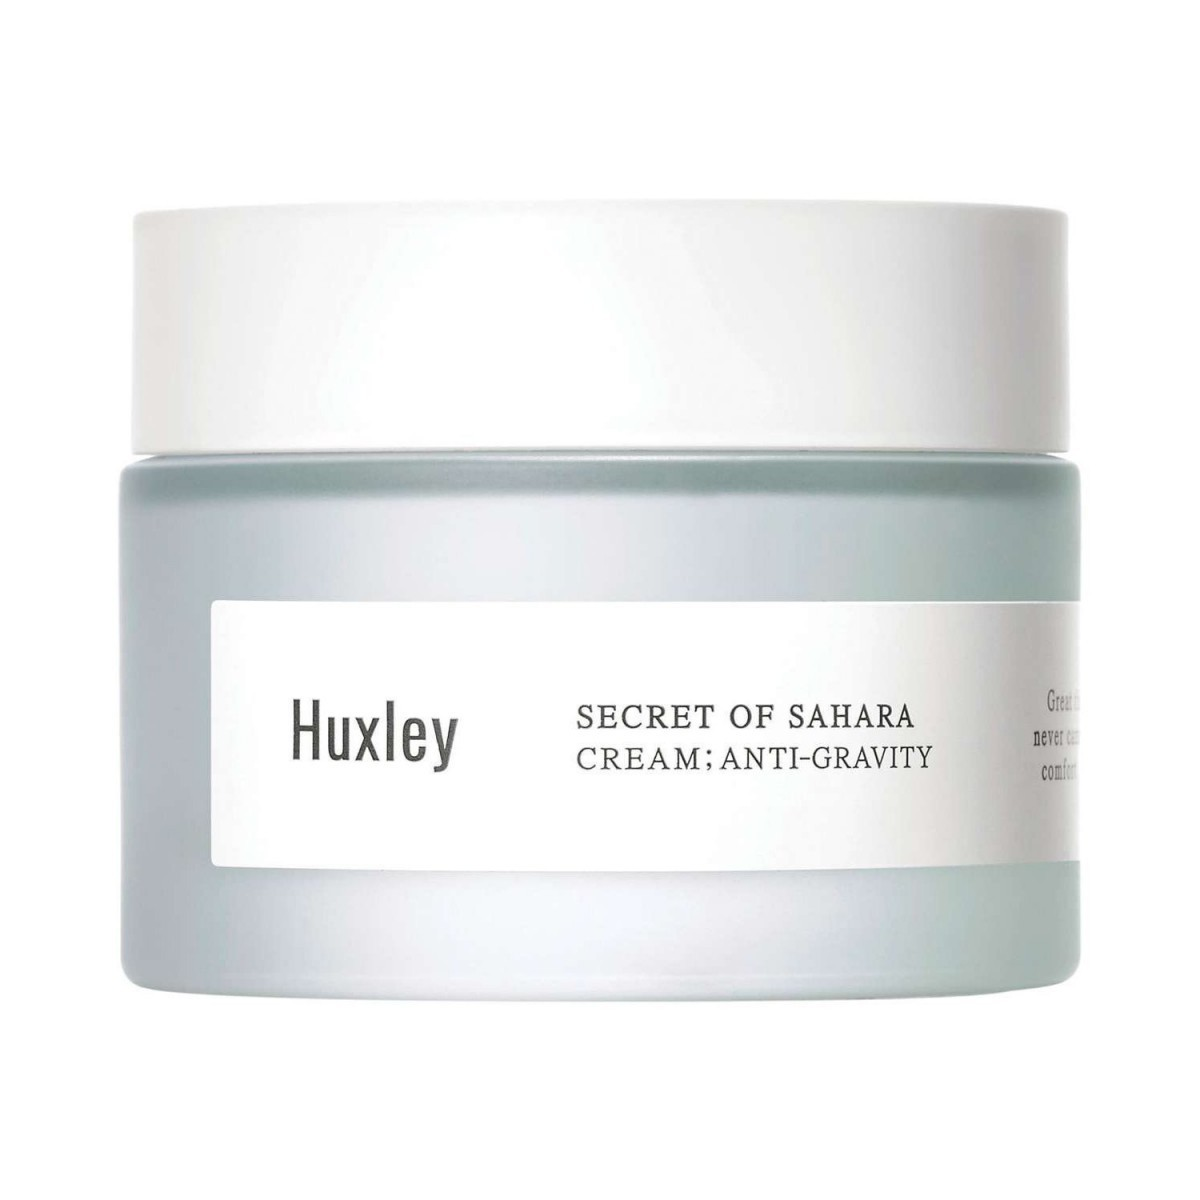 Крем Huxley Secret of Sahara Anti-Gravity Cream 50 мл